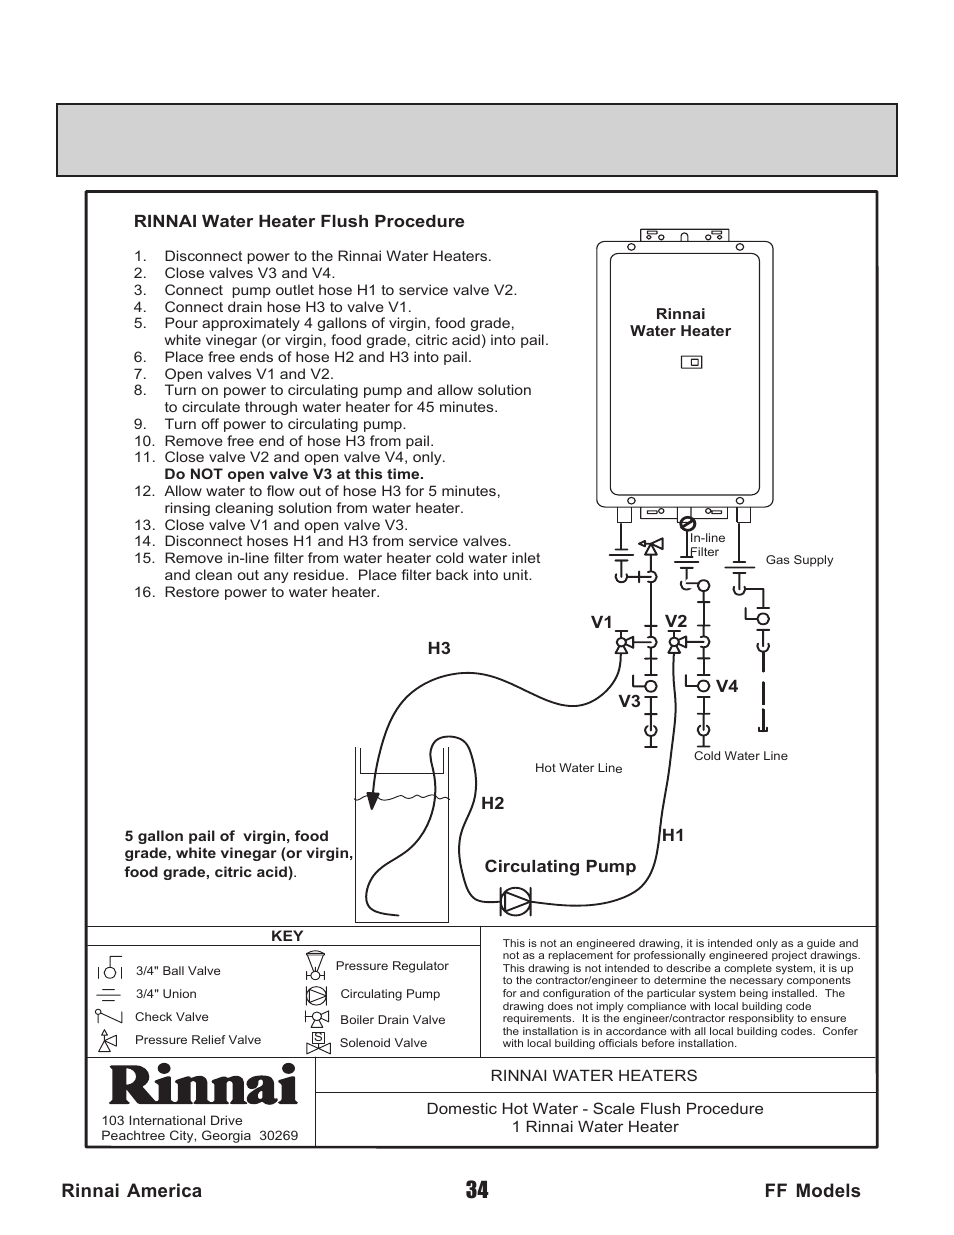 hight resolution of rinnai water heater reu v2520ffud user manual page 34 48 also for water heater reu v2532ffu water heater reu v2532ffuc water heater reu v2520ffu